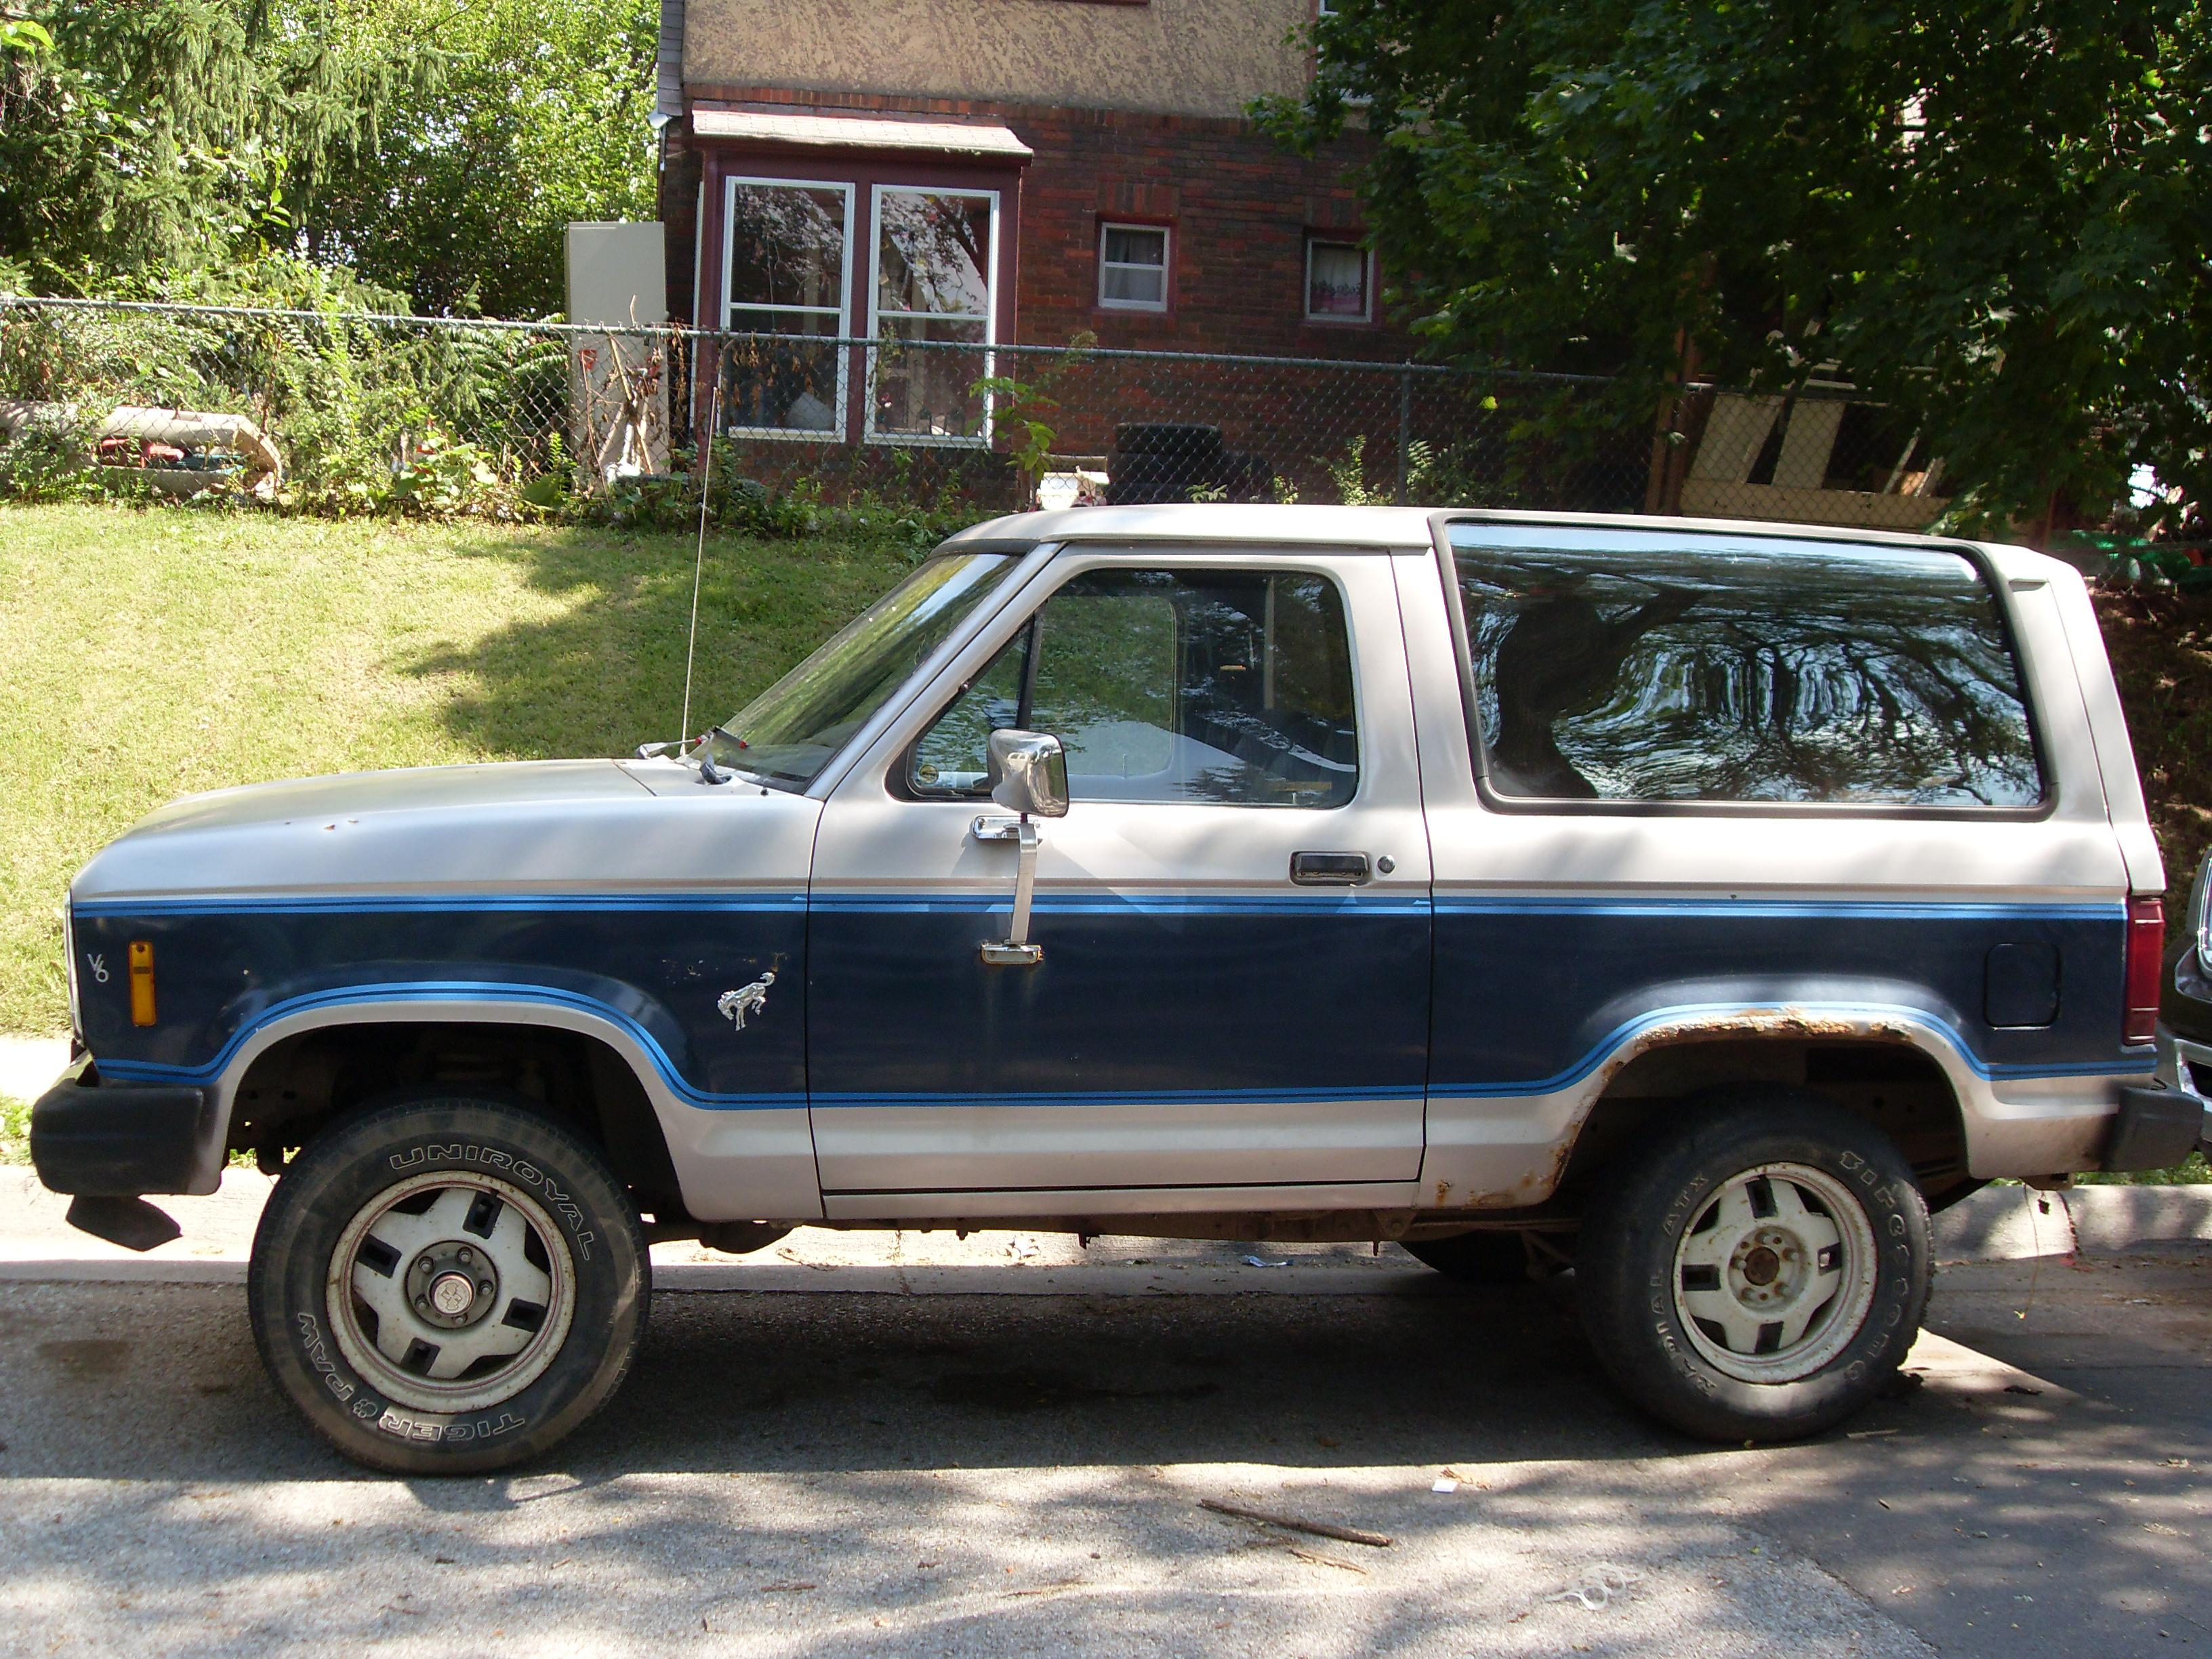 Nissan Of Omaha >> Shapechanger 1985 Ford Bronco II Specs, Photos, Modification Info at CarDomain